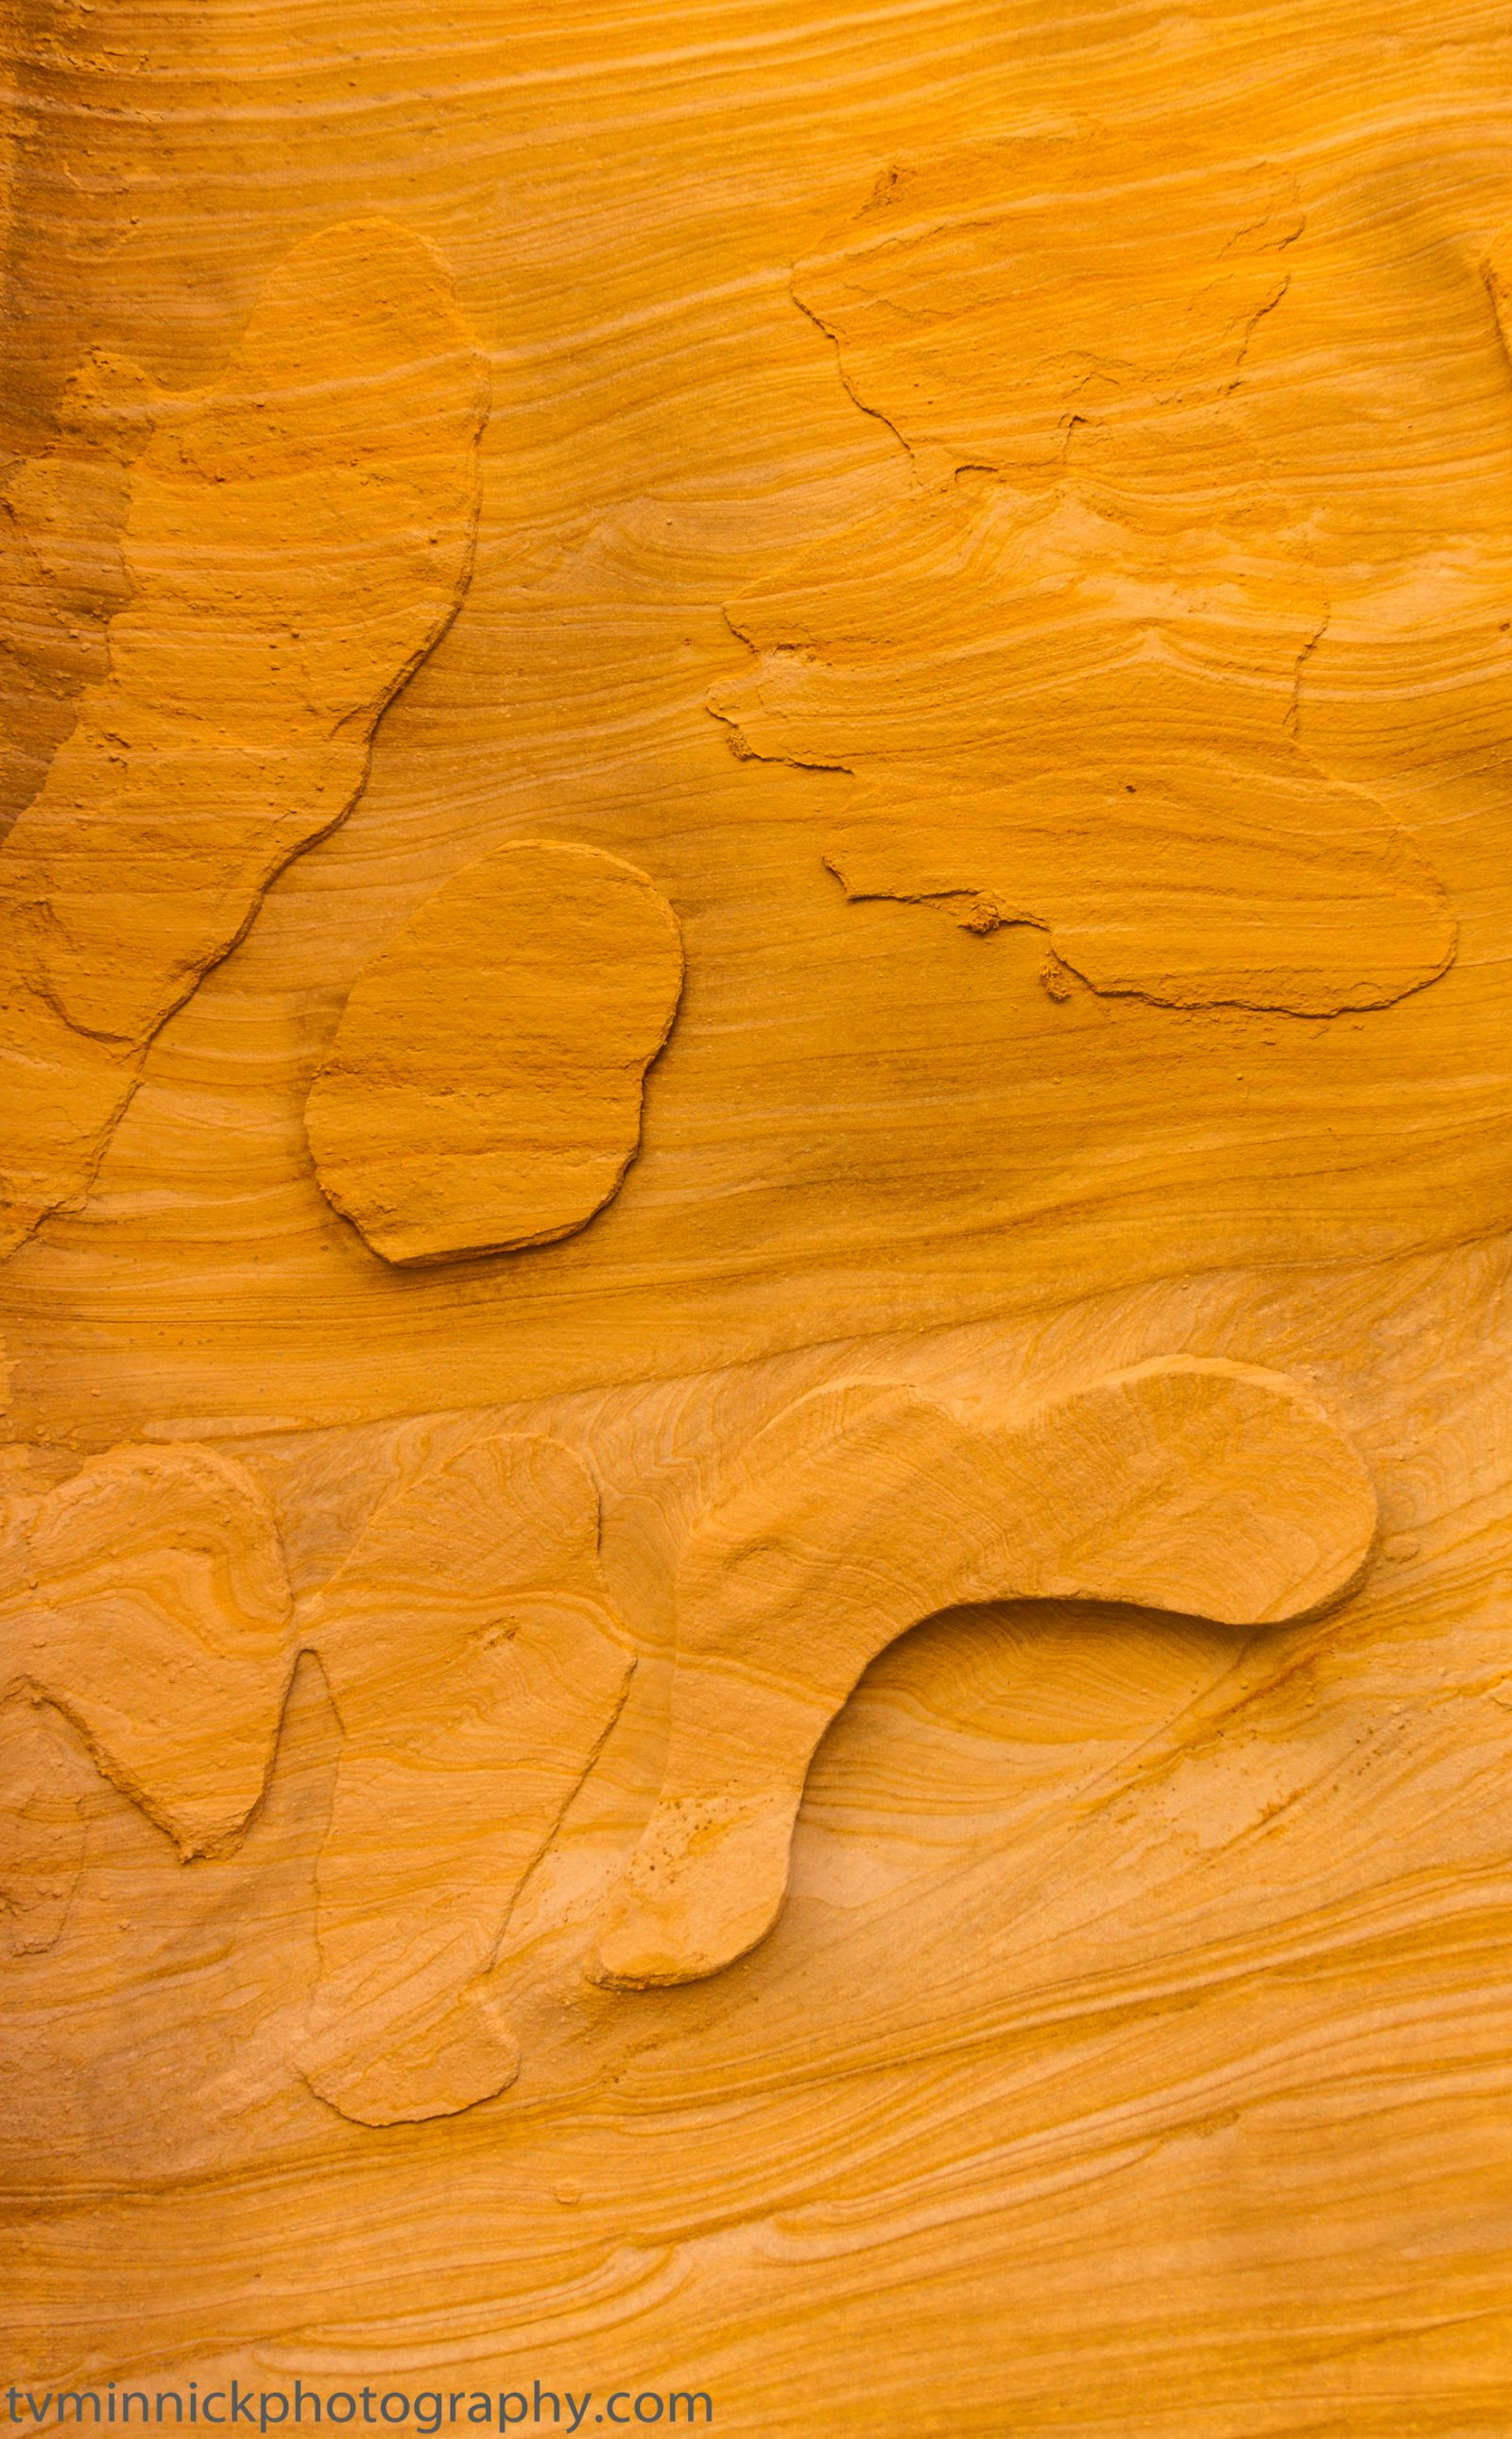 Shapes in Sandstone